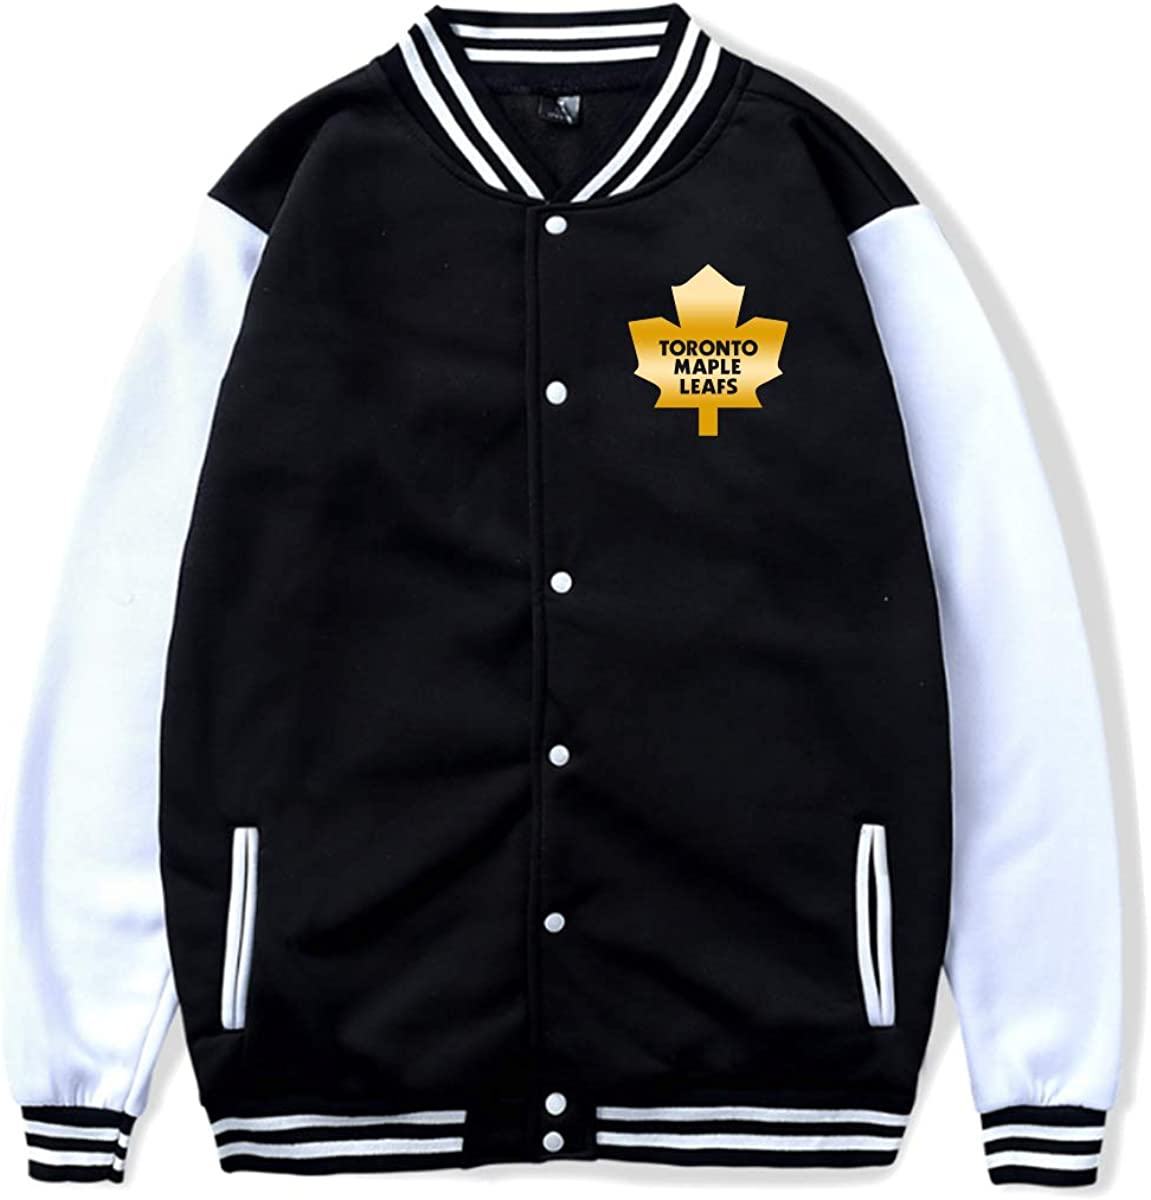 Unisex Varsity Jackets Toronto Maple Leafs Gold Fashion Button Front Cotton Bomber Baseball Jackets Amazon Ca Clothing Accessories